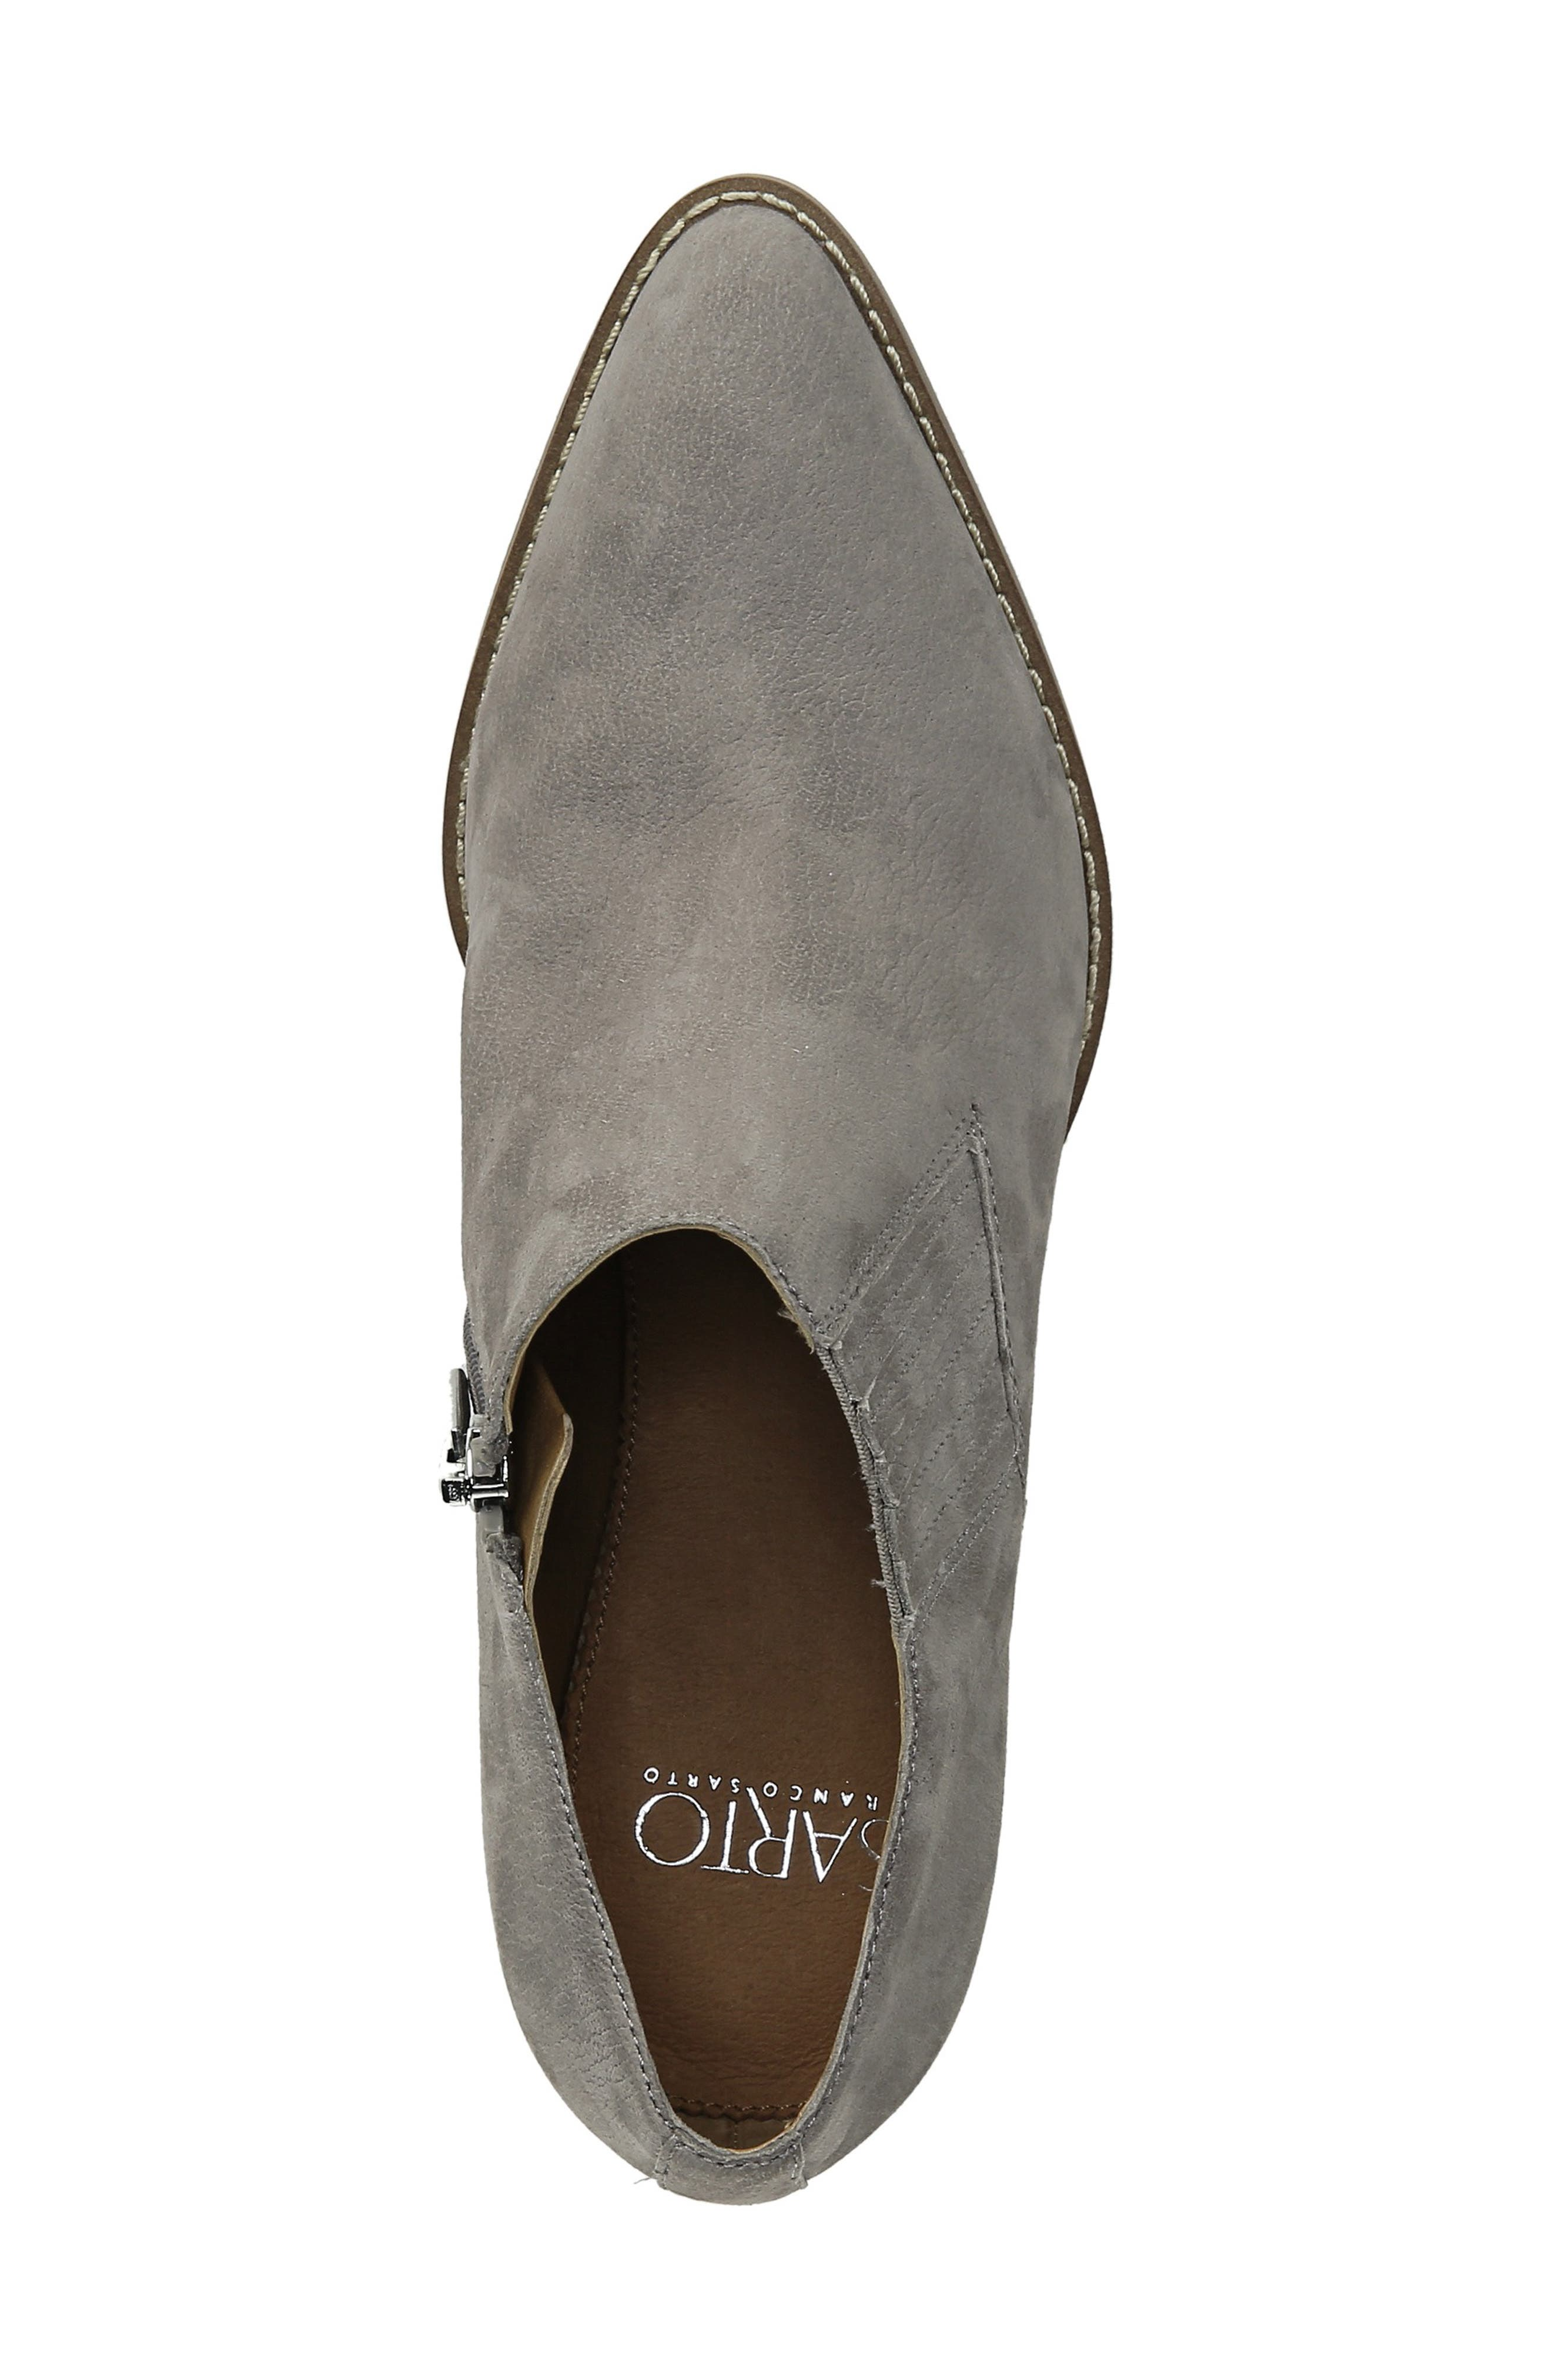 Camella Bootie,                             Alternate thumbnail 5, color,                             GREYSTONE NUBUCK LEATHER